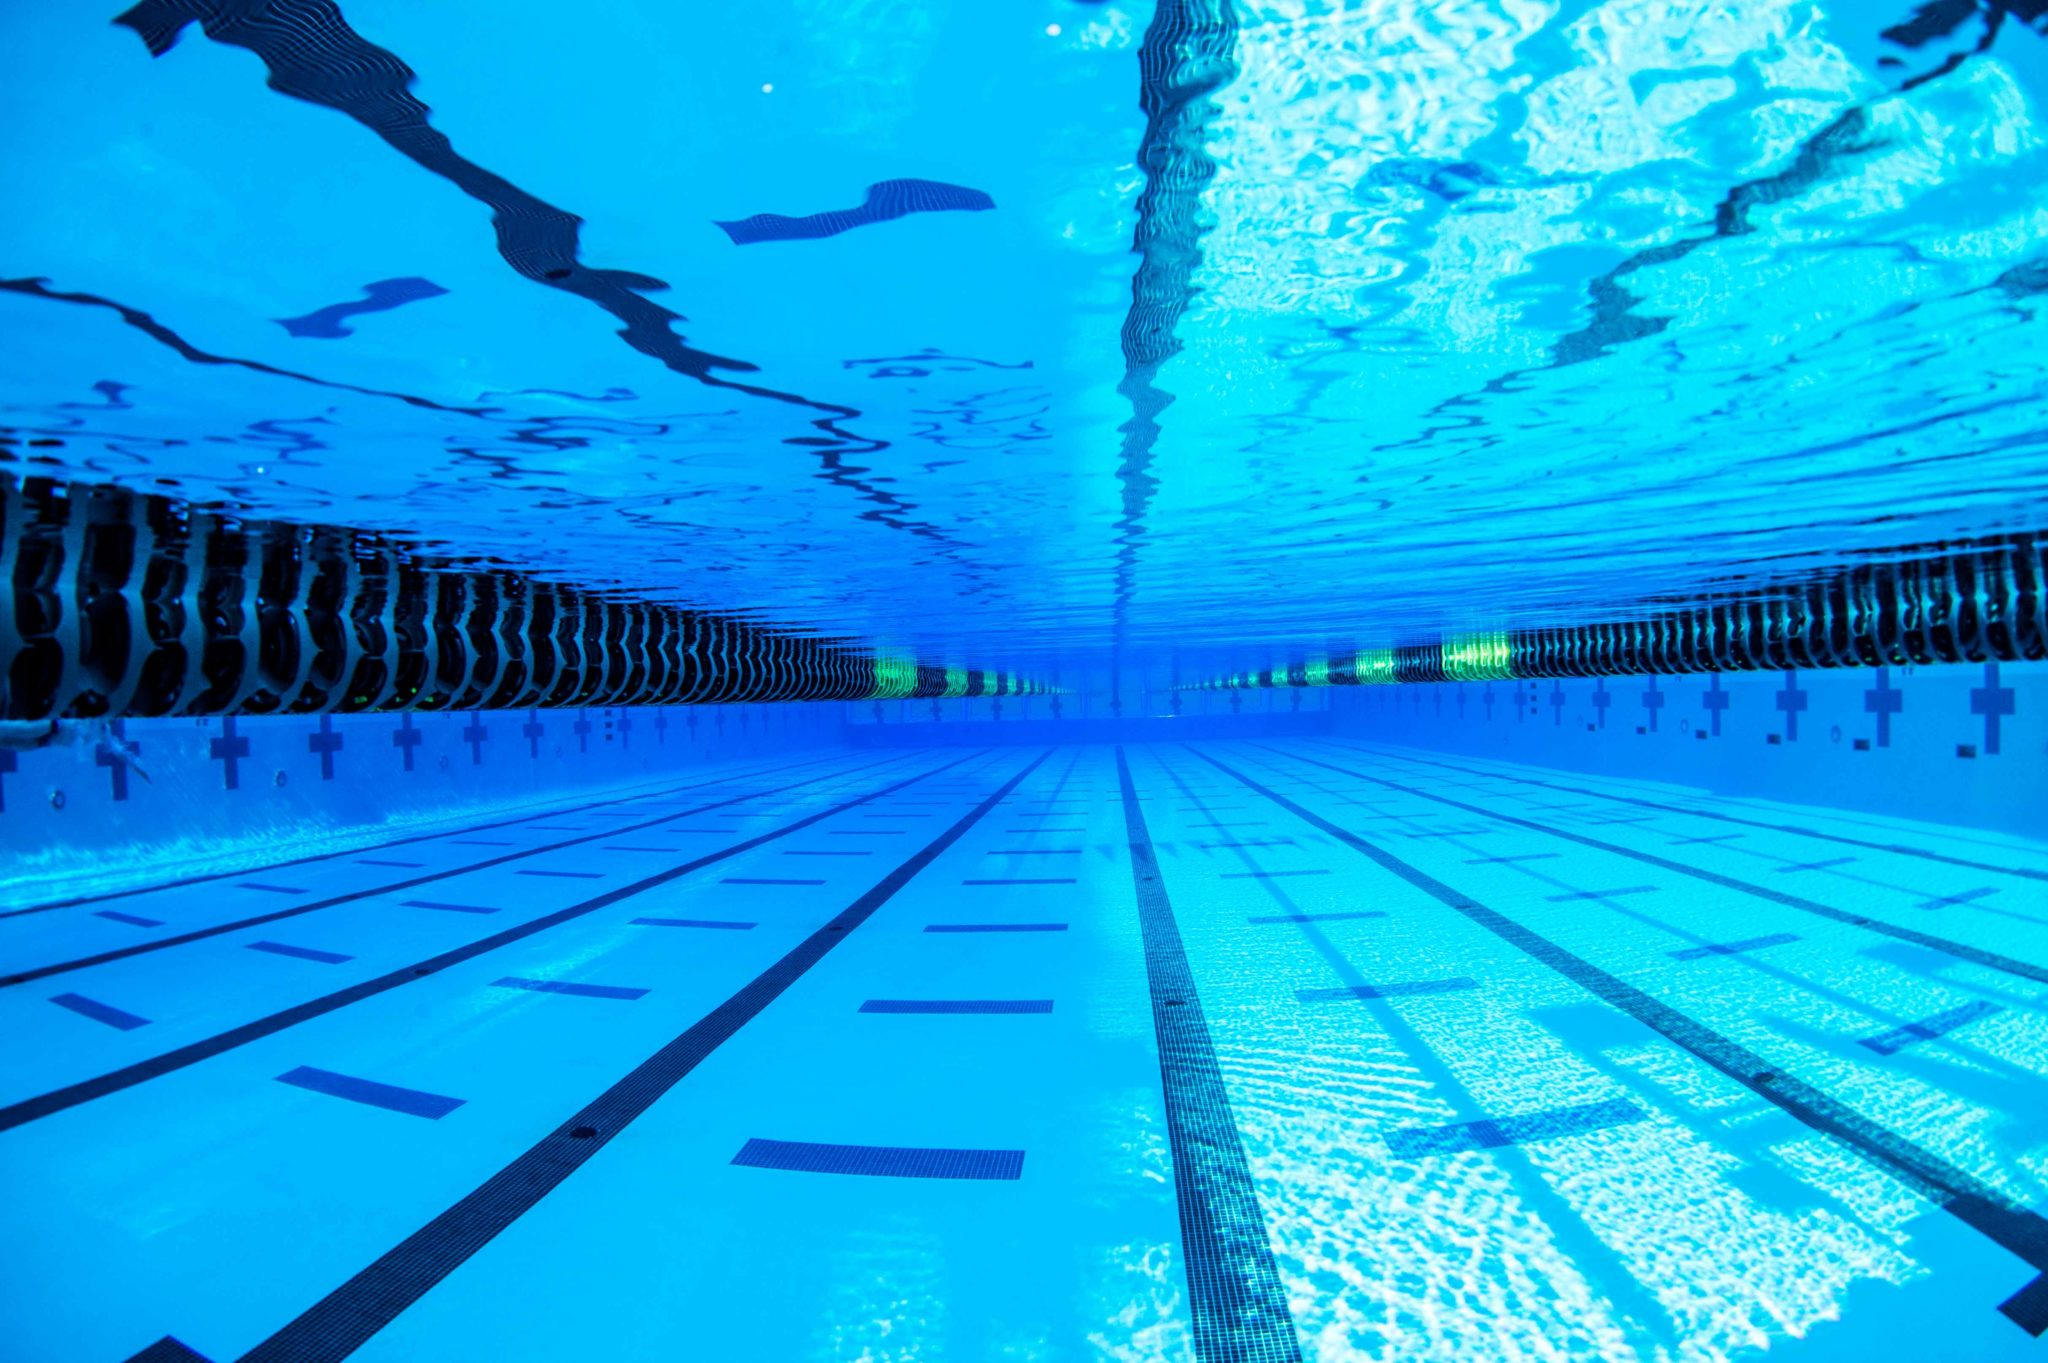 Mental Health In Swimming A Silent Struggle One Of Many